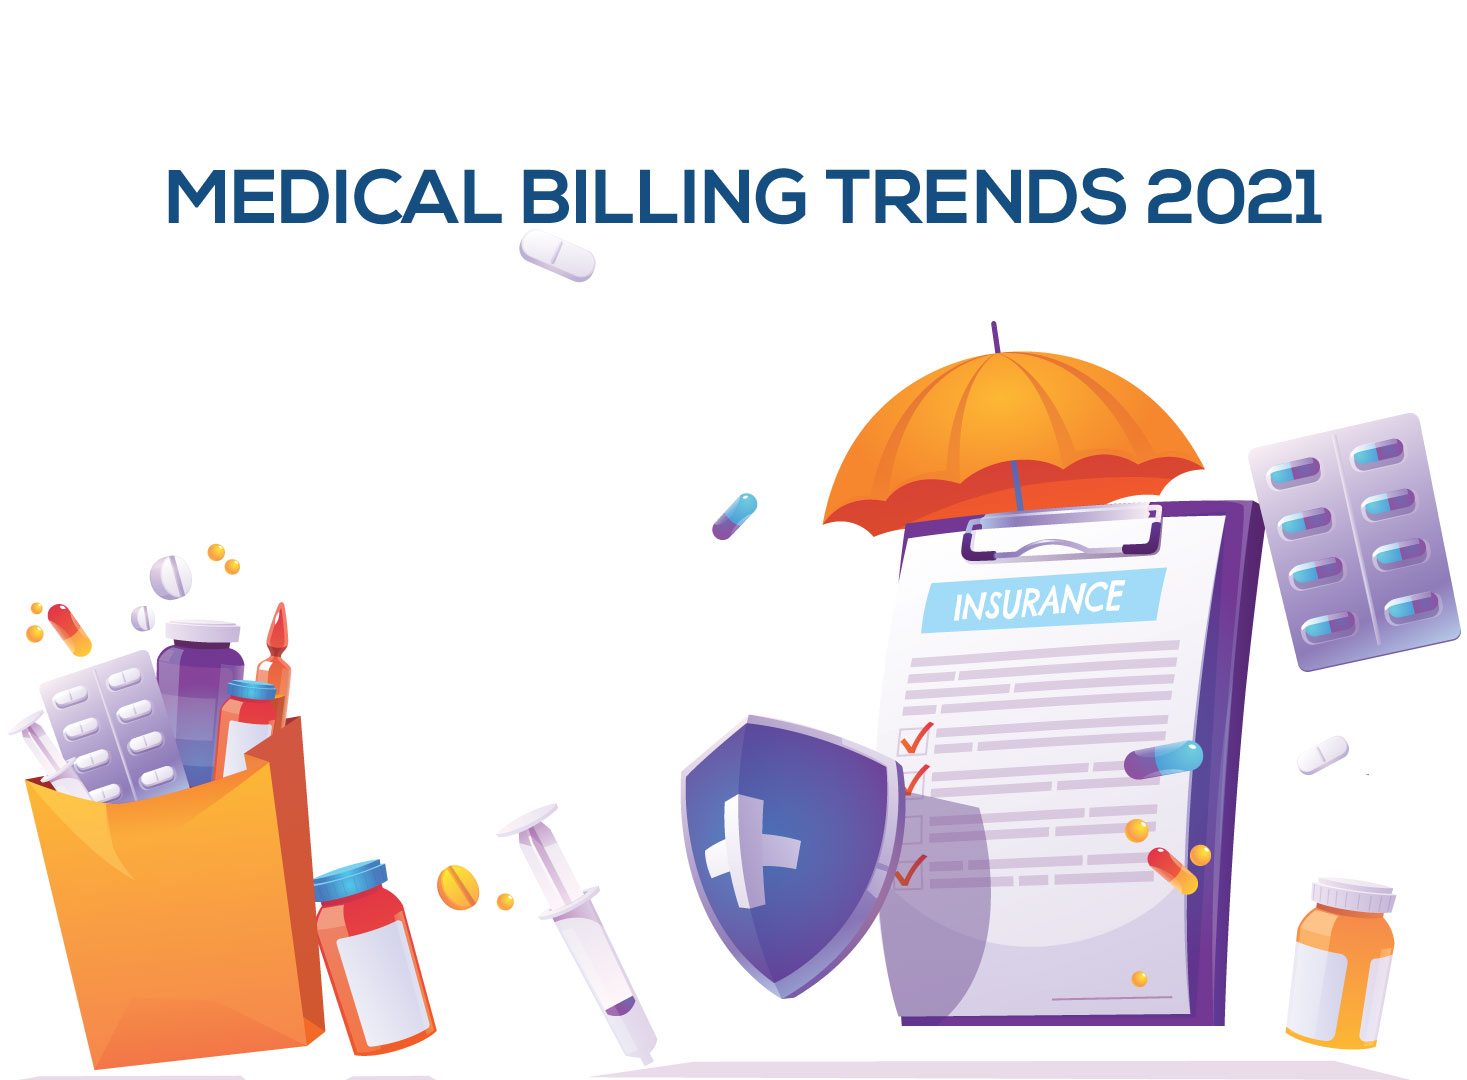 Plausible Medical Billing Trends for 2021!